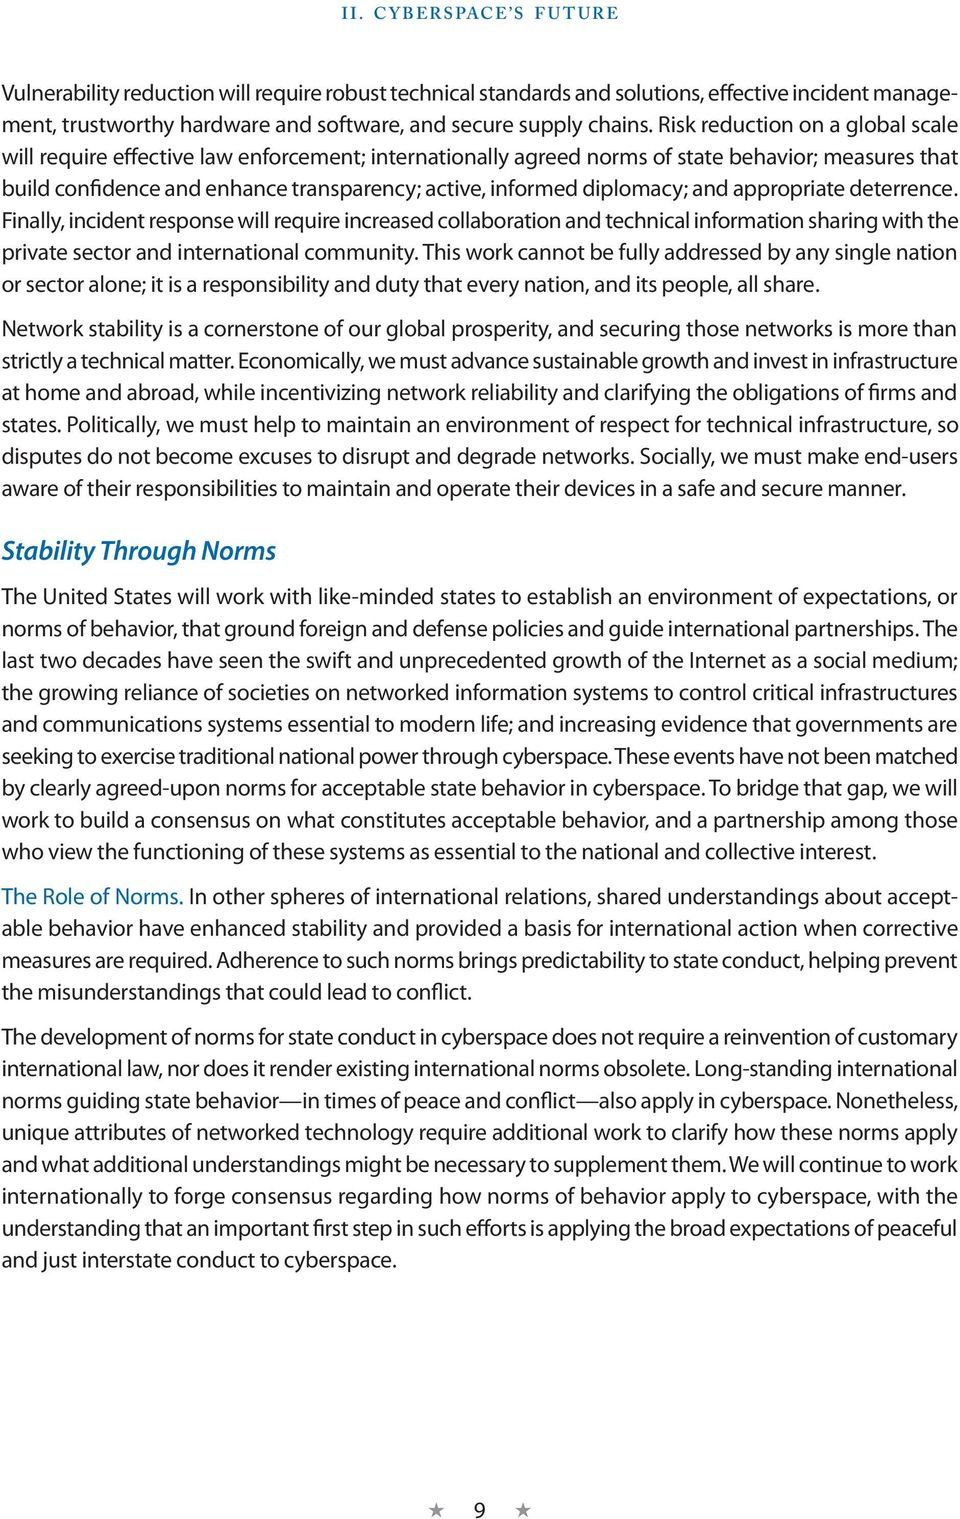 These principles provide a basic roadmap for how states can meet their traditional international obligations in cyberspace and, in many cases, reflect duties of states that apply regardless of